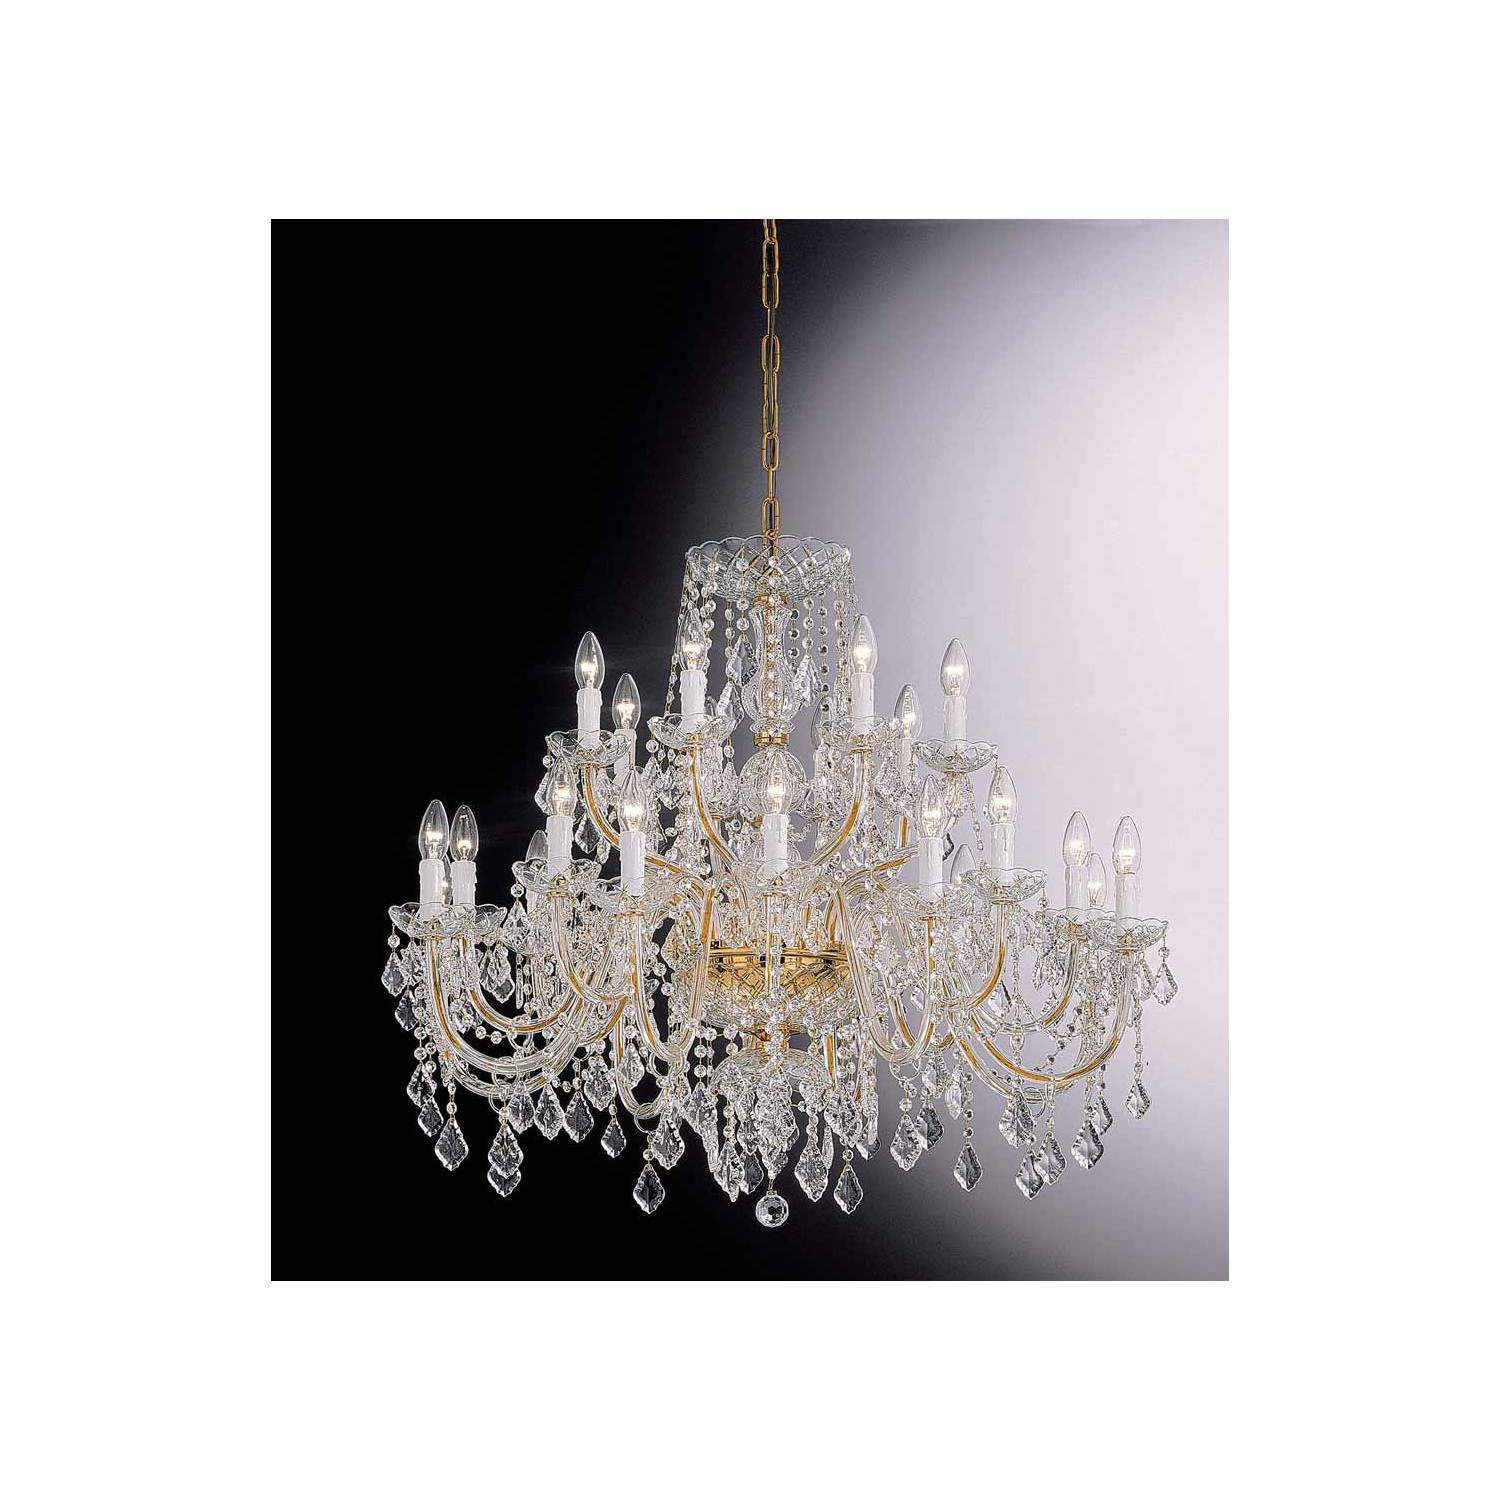 Asfour crystal chandelier 407168olasf artital lighting home asfour crystal chandelier 407168olasf aloadofball